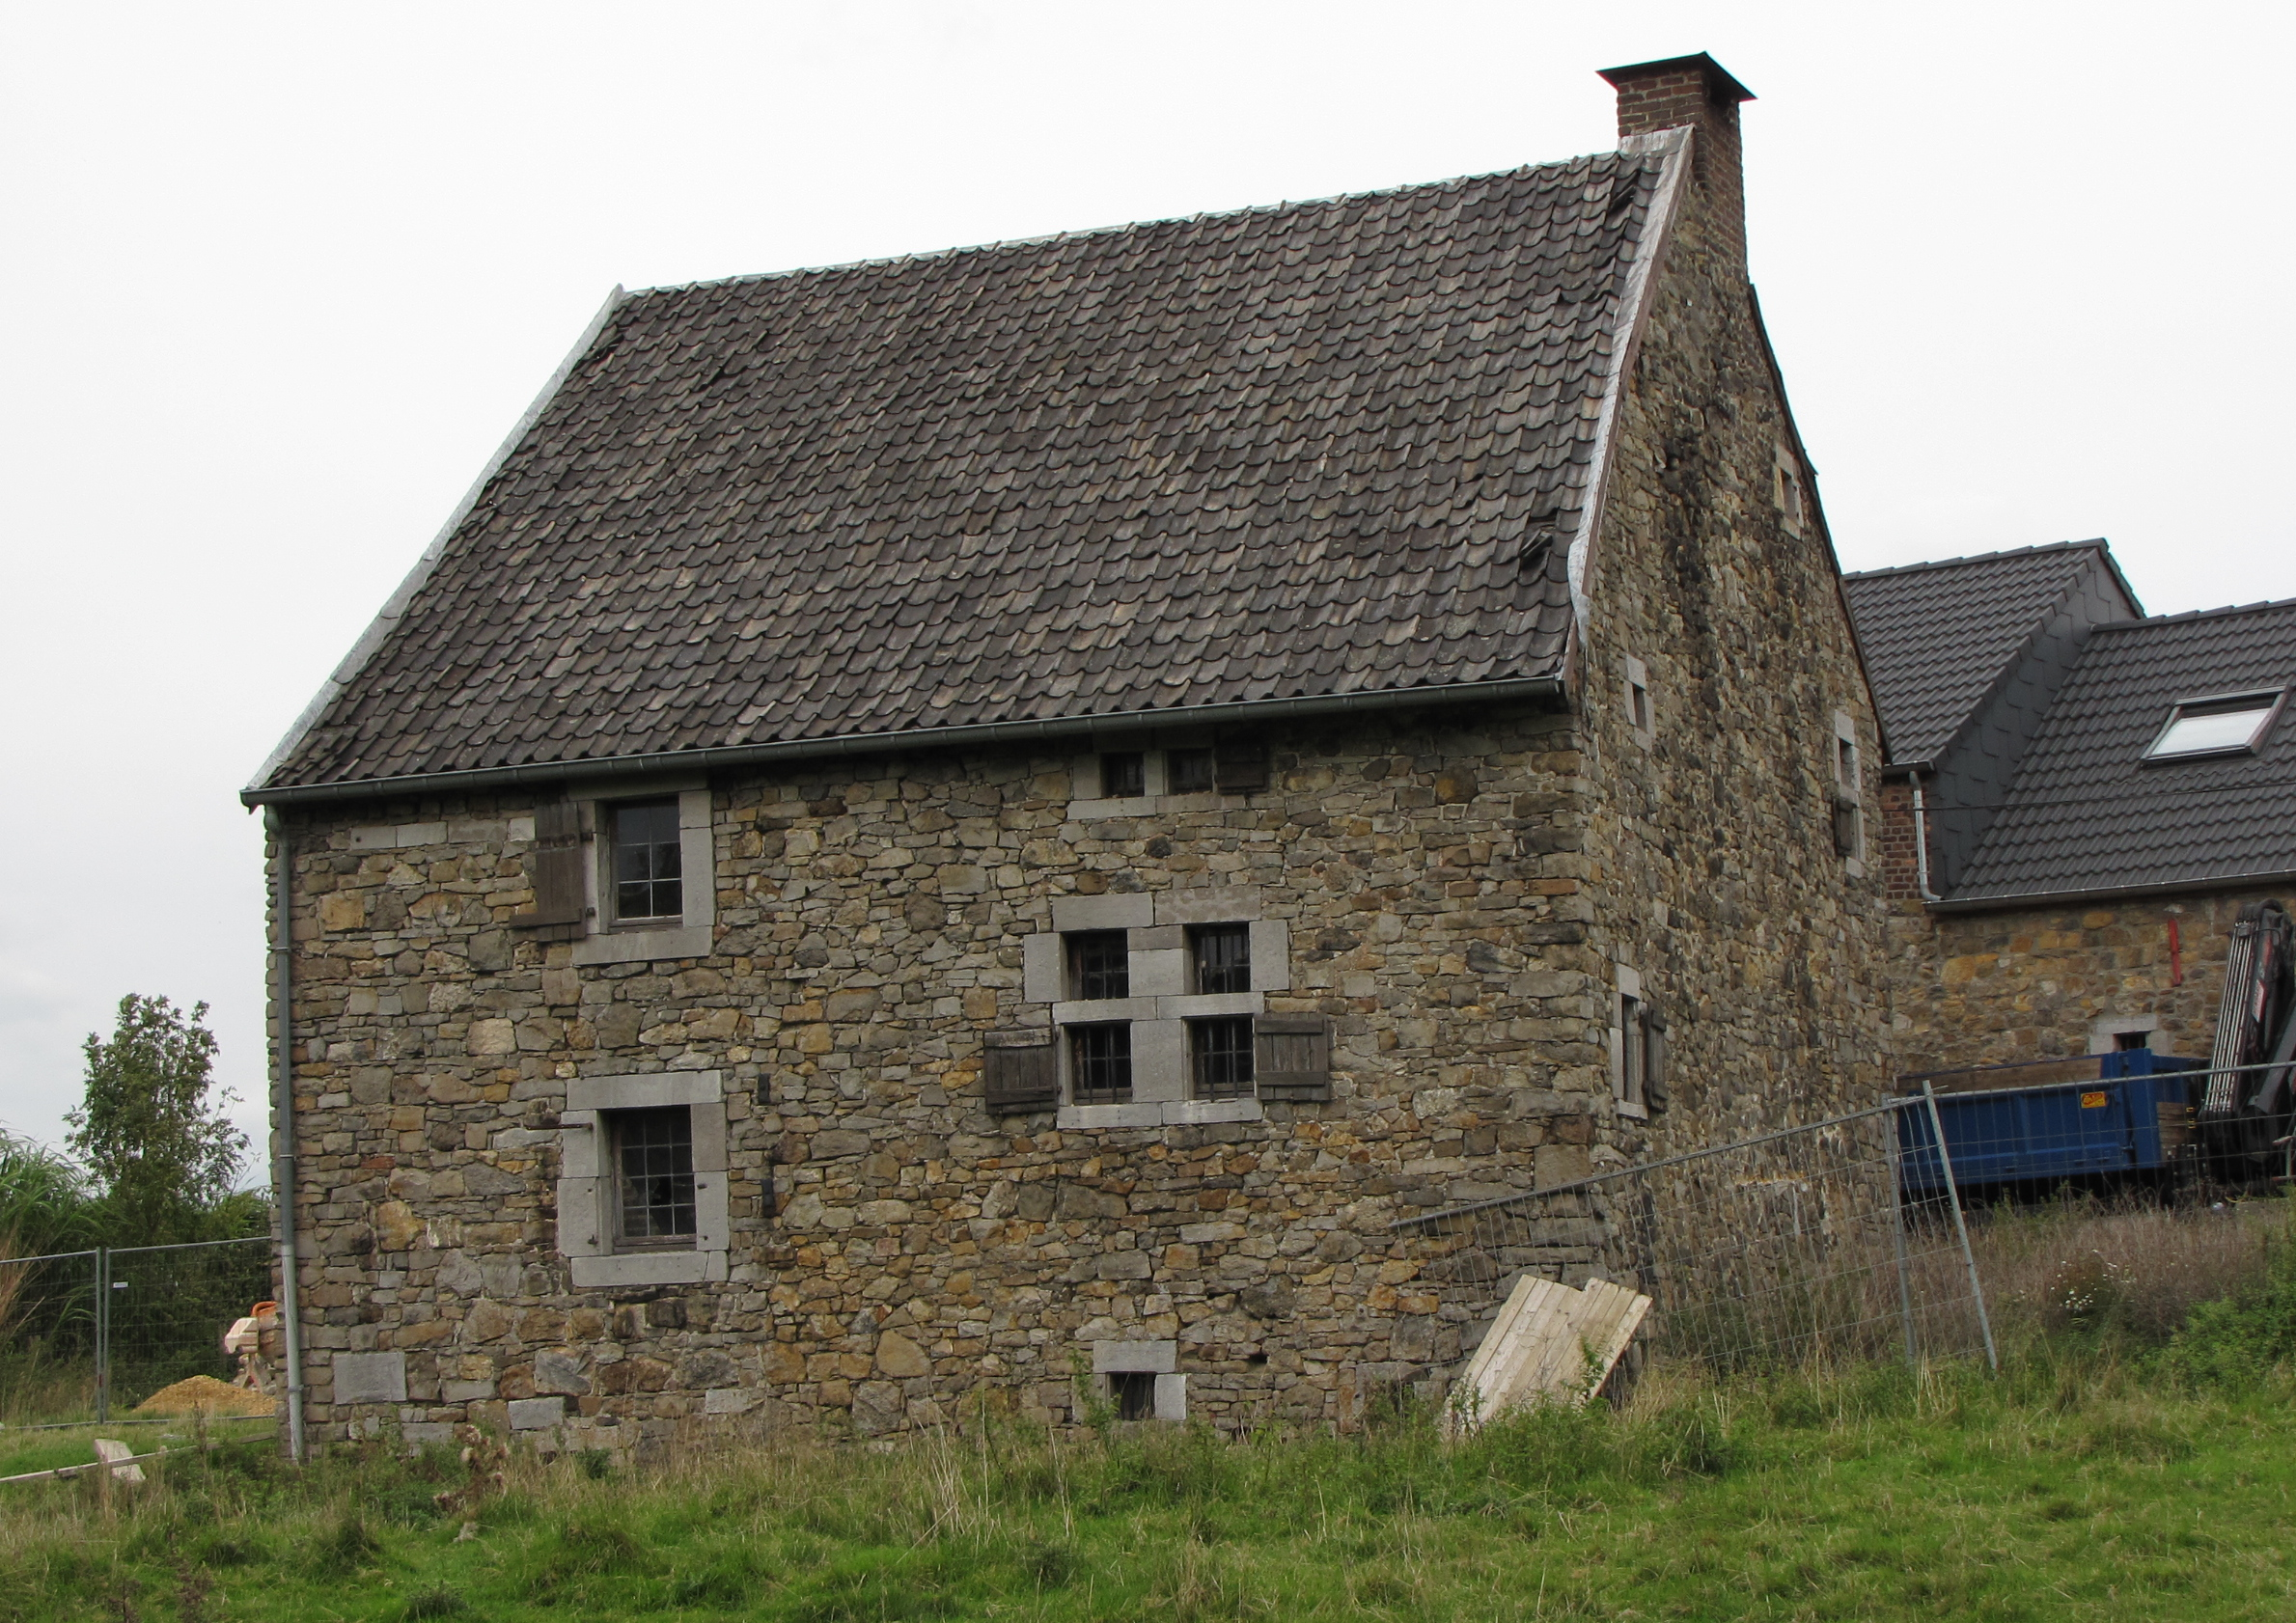 File:THIMISTER maison ancienne Crawhez 44.jpg - Wikimedia Commons